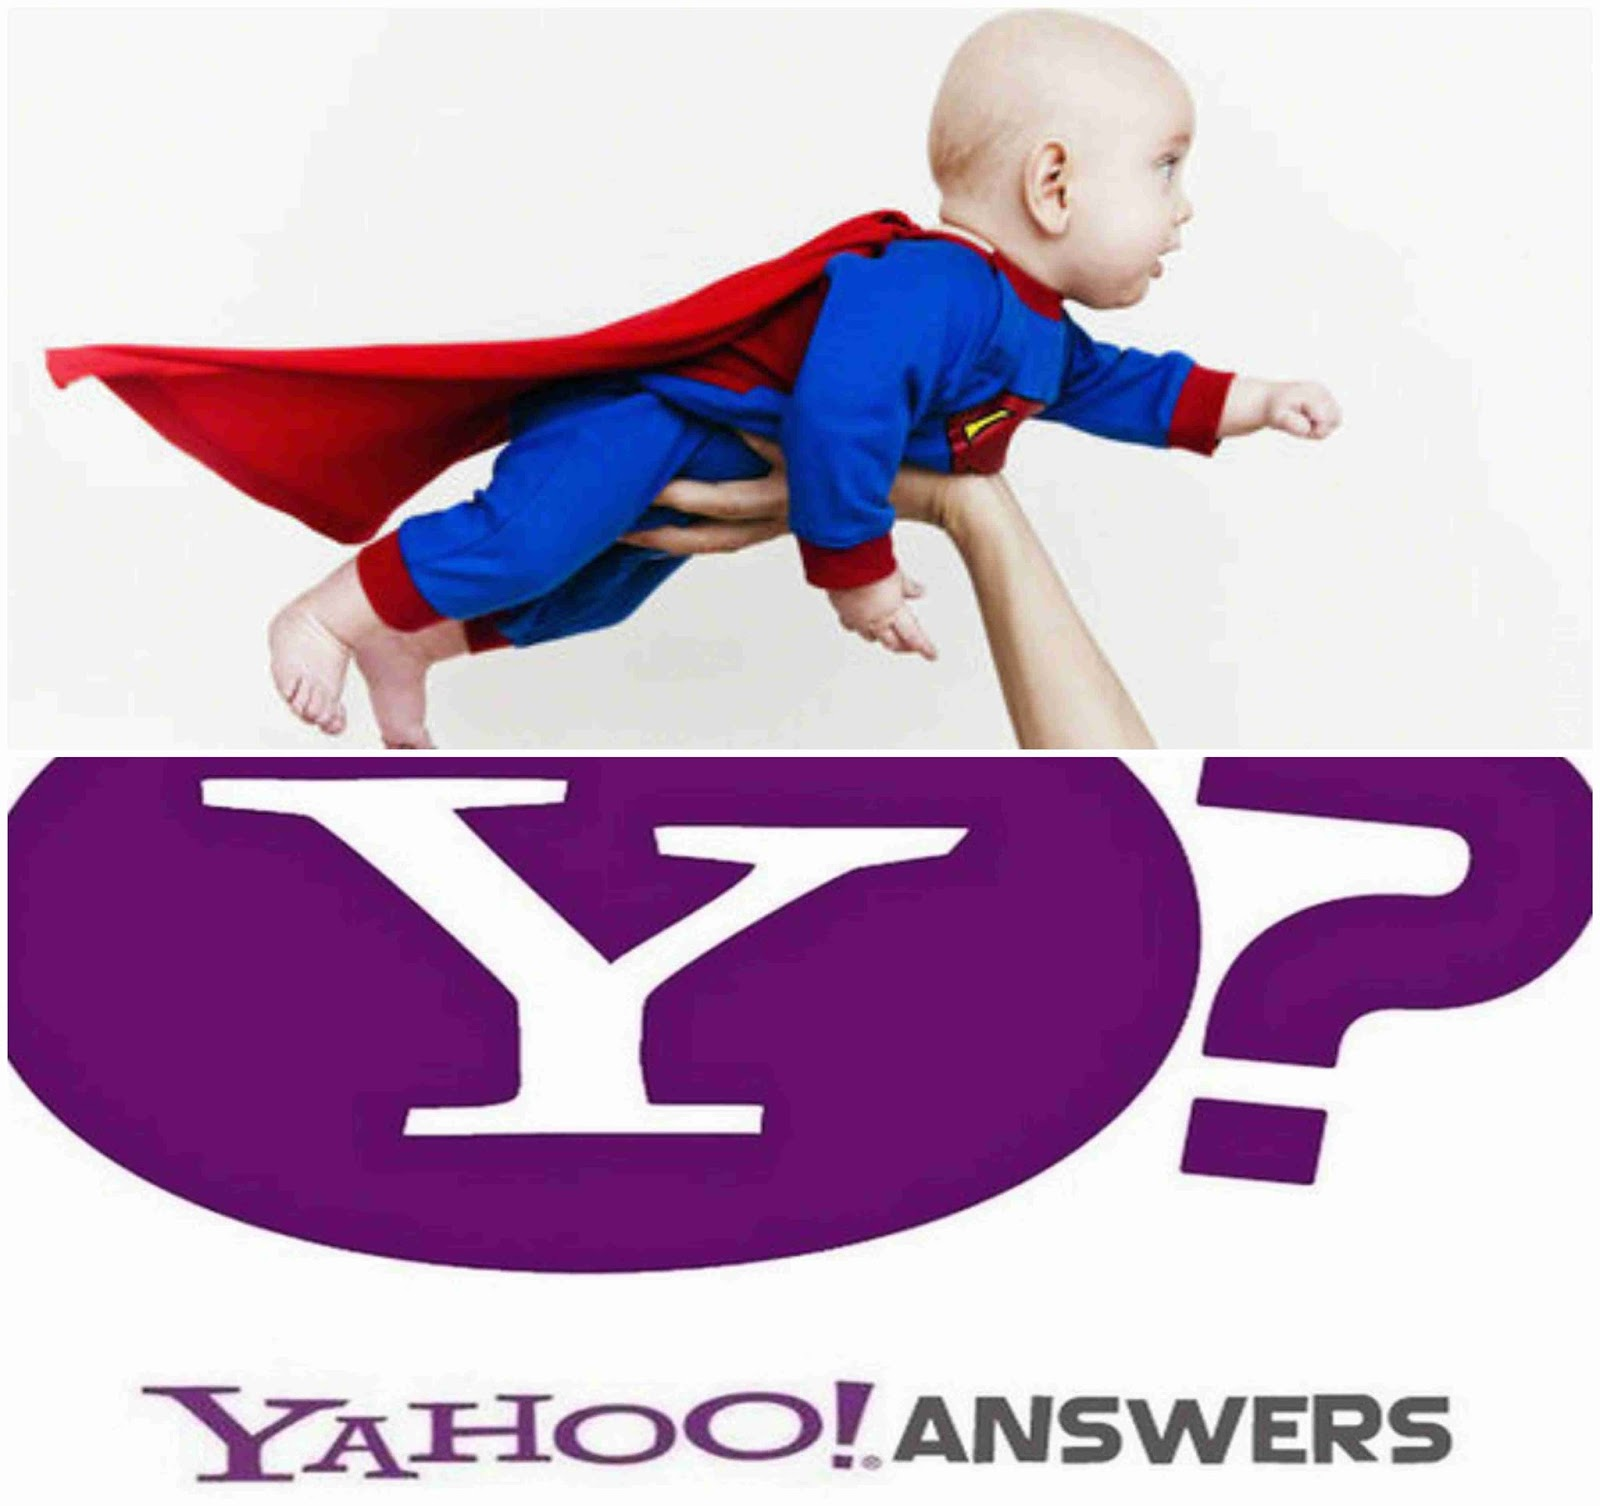 dolore al pene in erezione yahoo site it.answers.yahoo.com